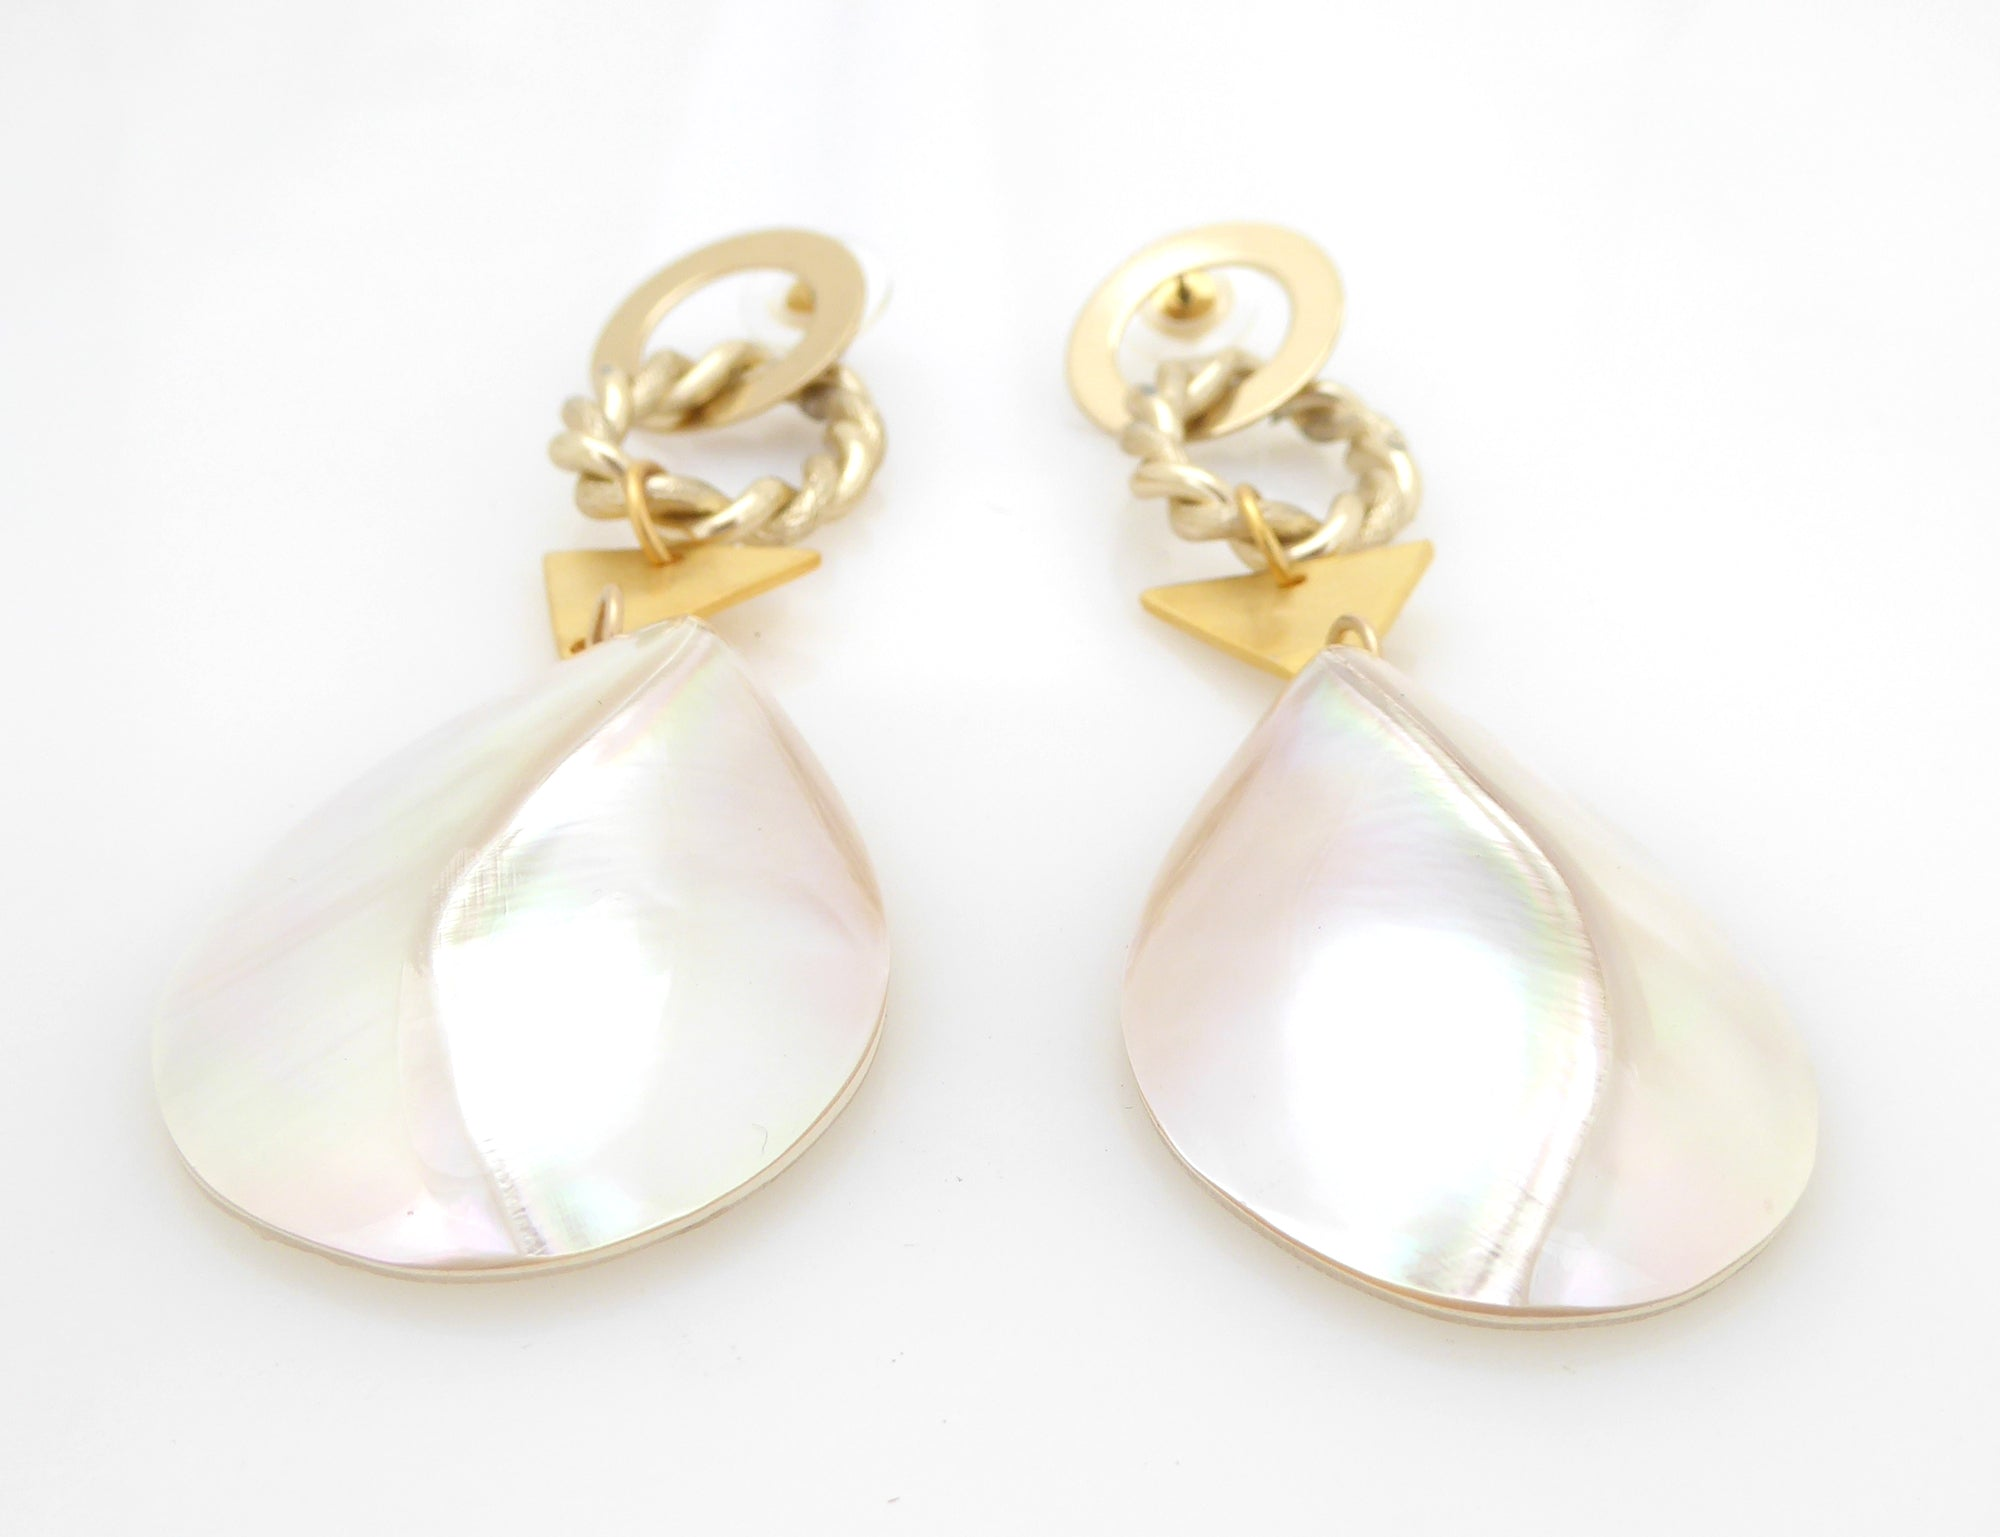 Geometric mother of pearl earrings